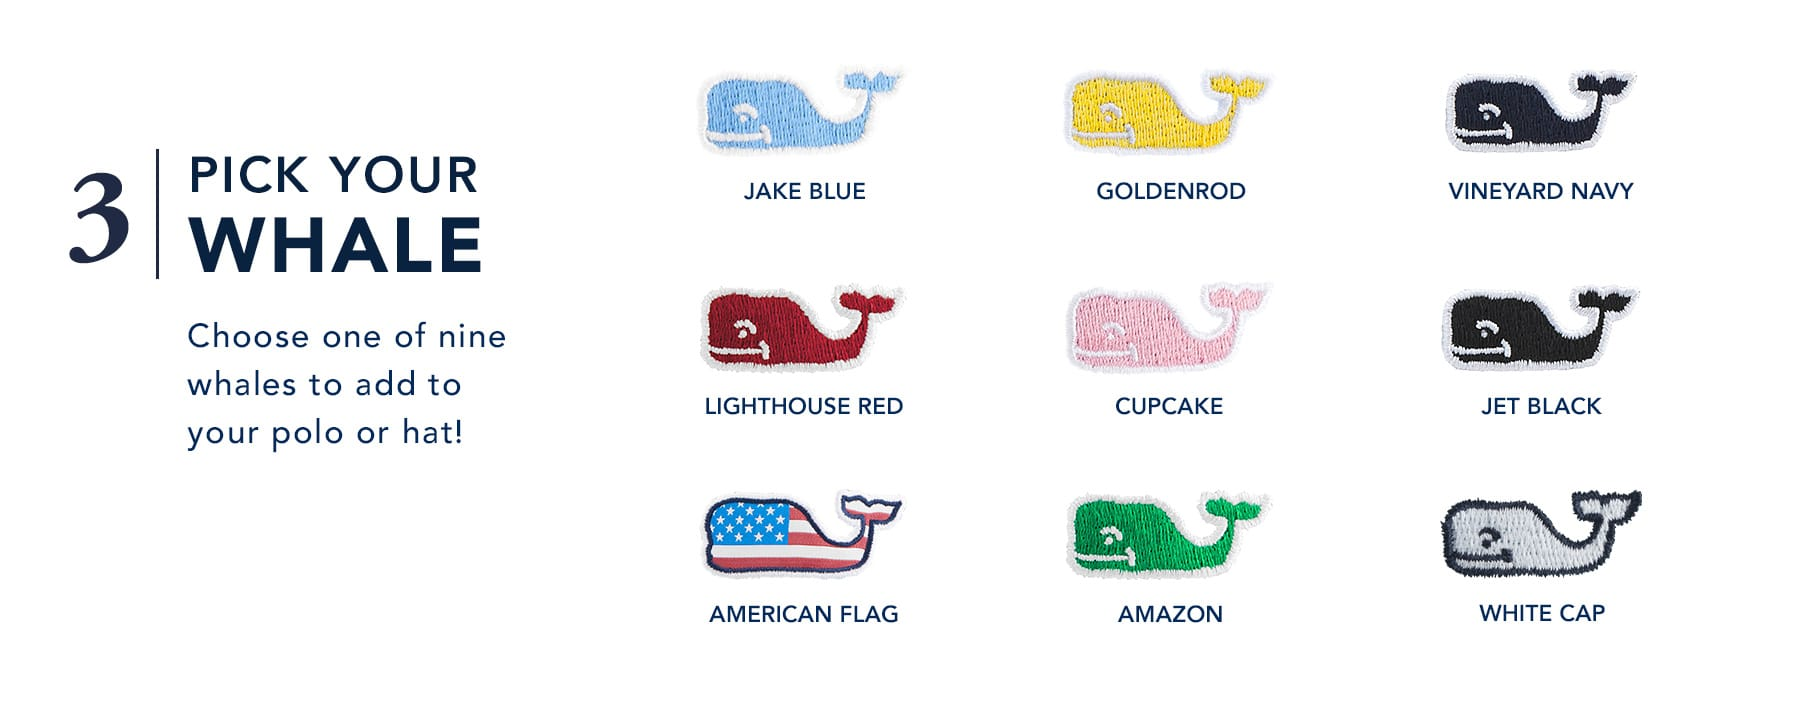 3. Pick your Whale - Choose one of nine whales to add to your polo or hat